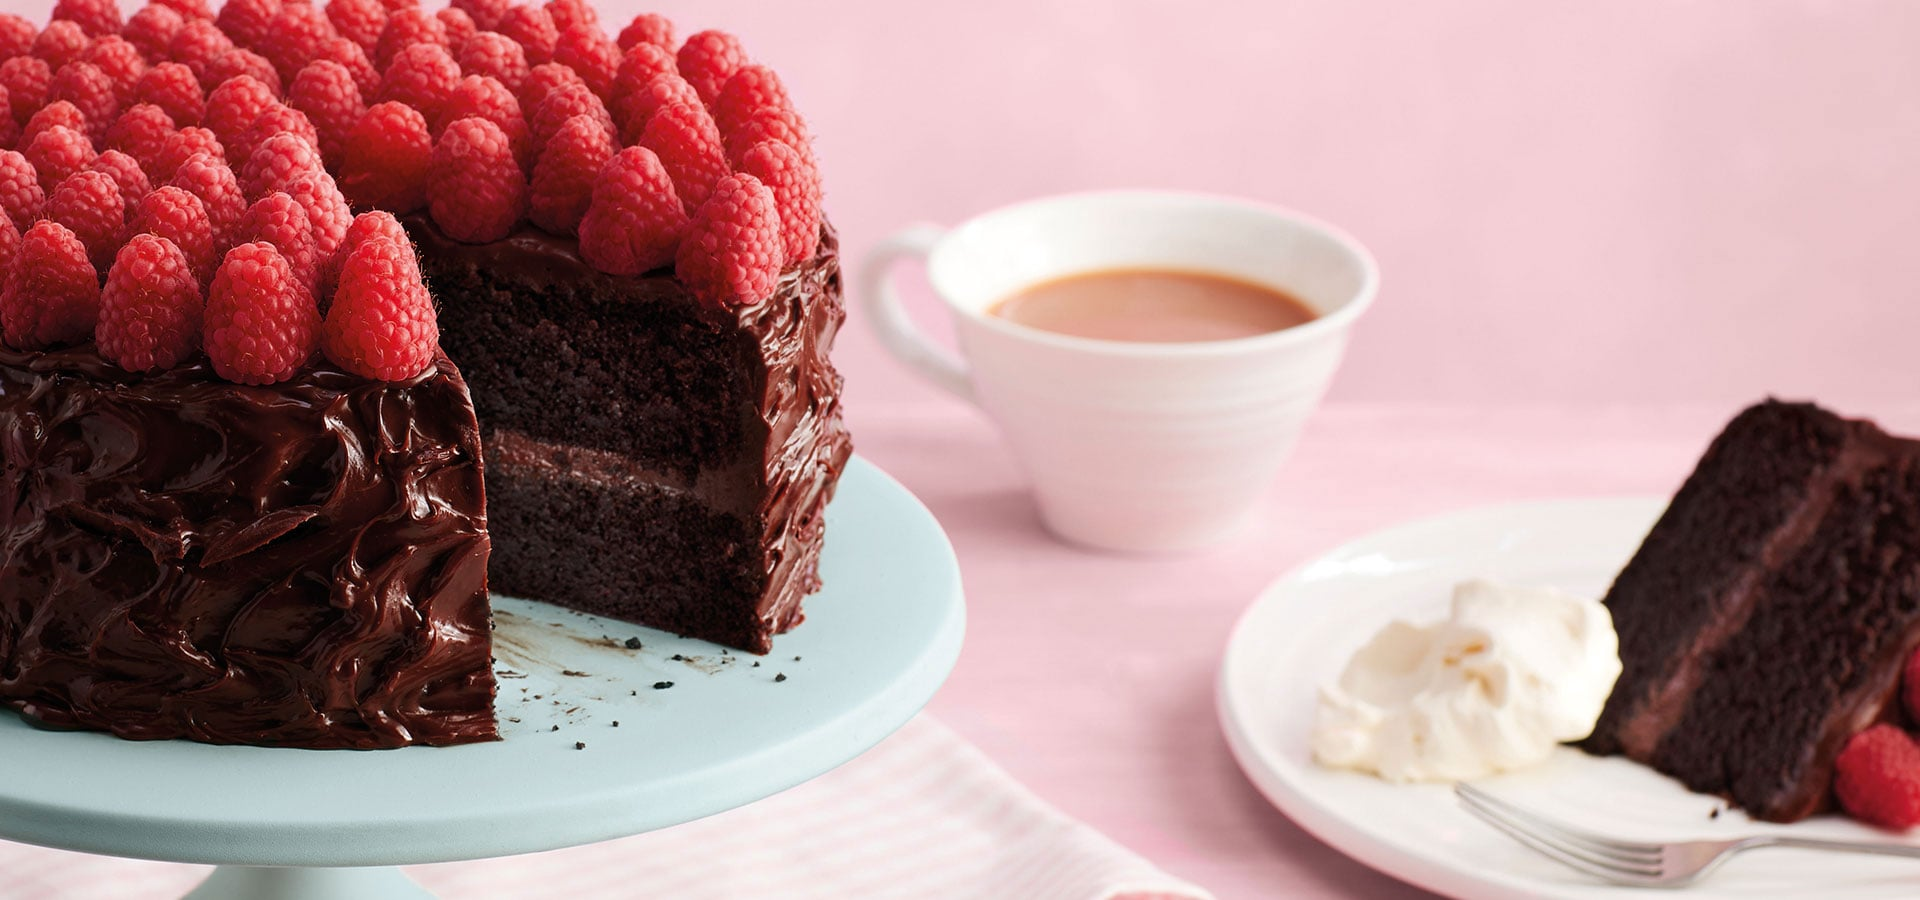 The first recipe in the Bake Off Box is a signature chocolate cake